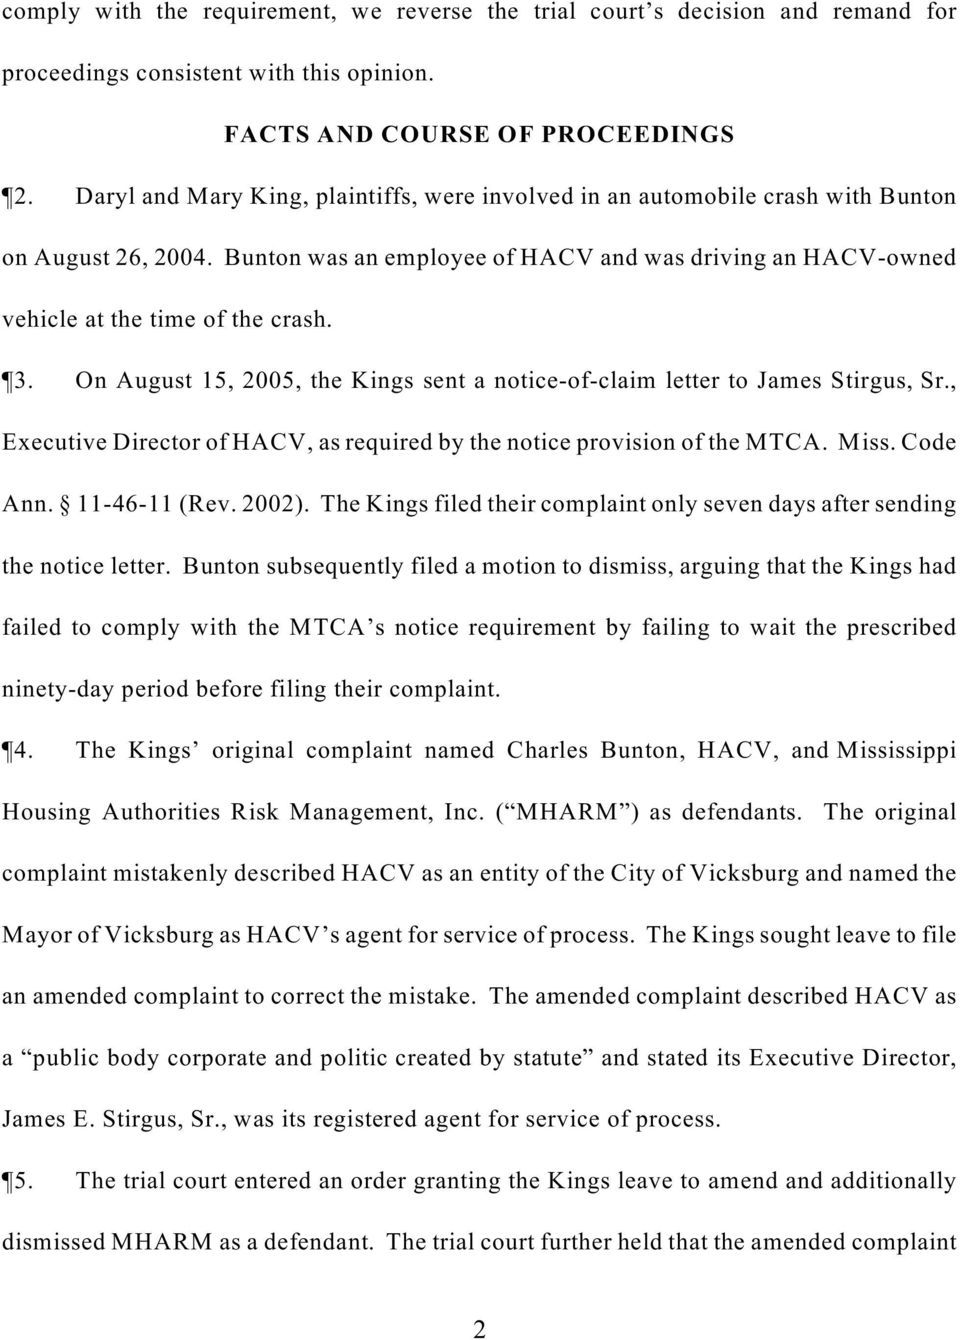 On August 15, 2005, the Kings sent a notice-of-claim letter to James Stirgus, Sr., Executive Director of HACV, as required by the notice provision of the MTCA. Miss. Code Ann. 11-46-11 (Rev. 2002).